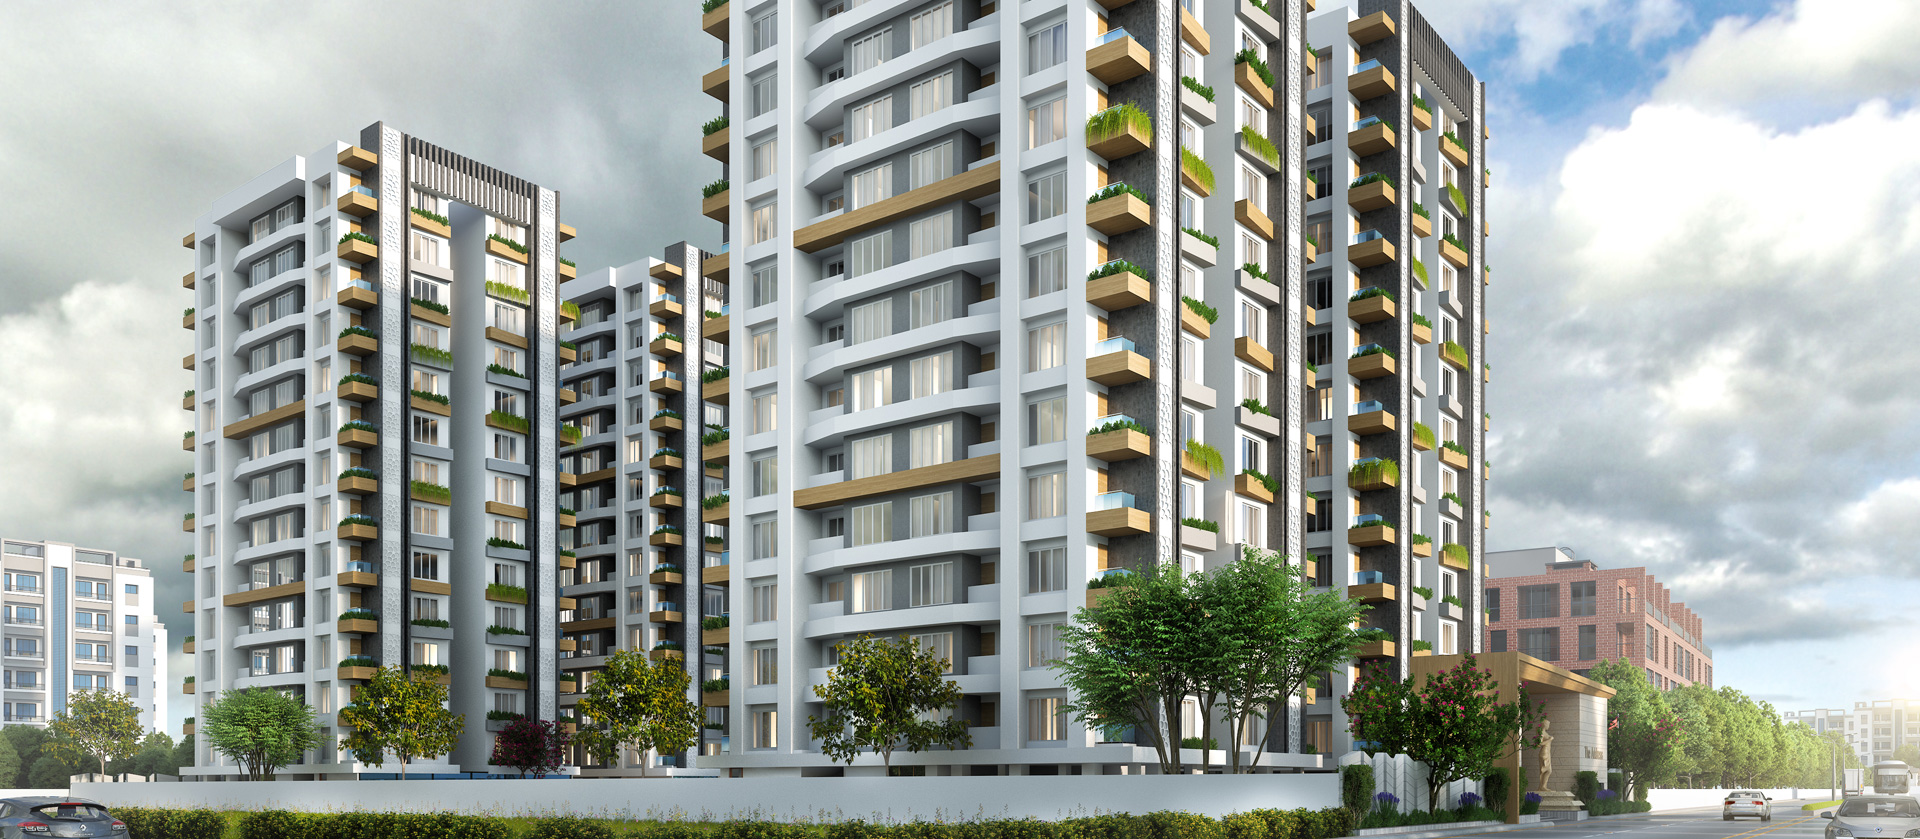 2bhk flats in Althan, surat